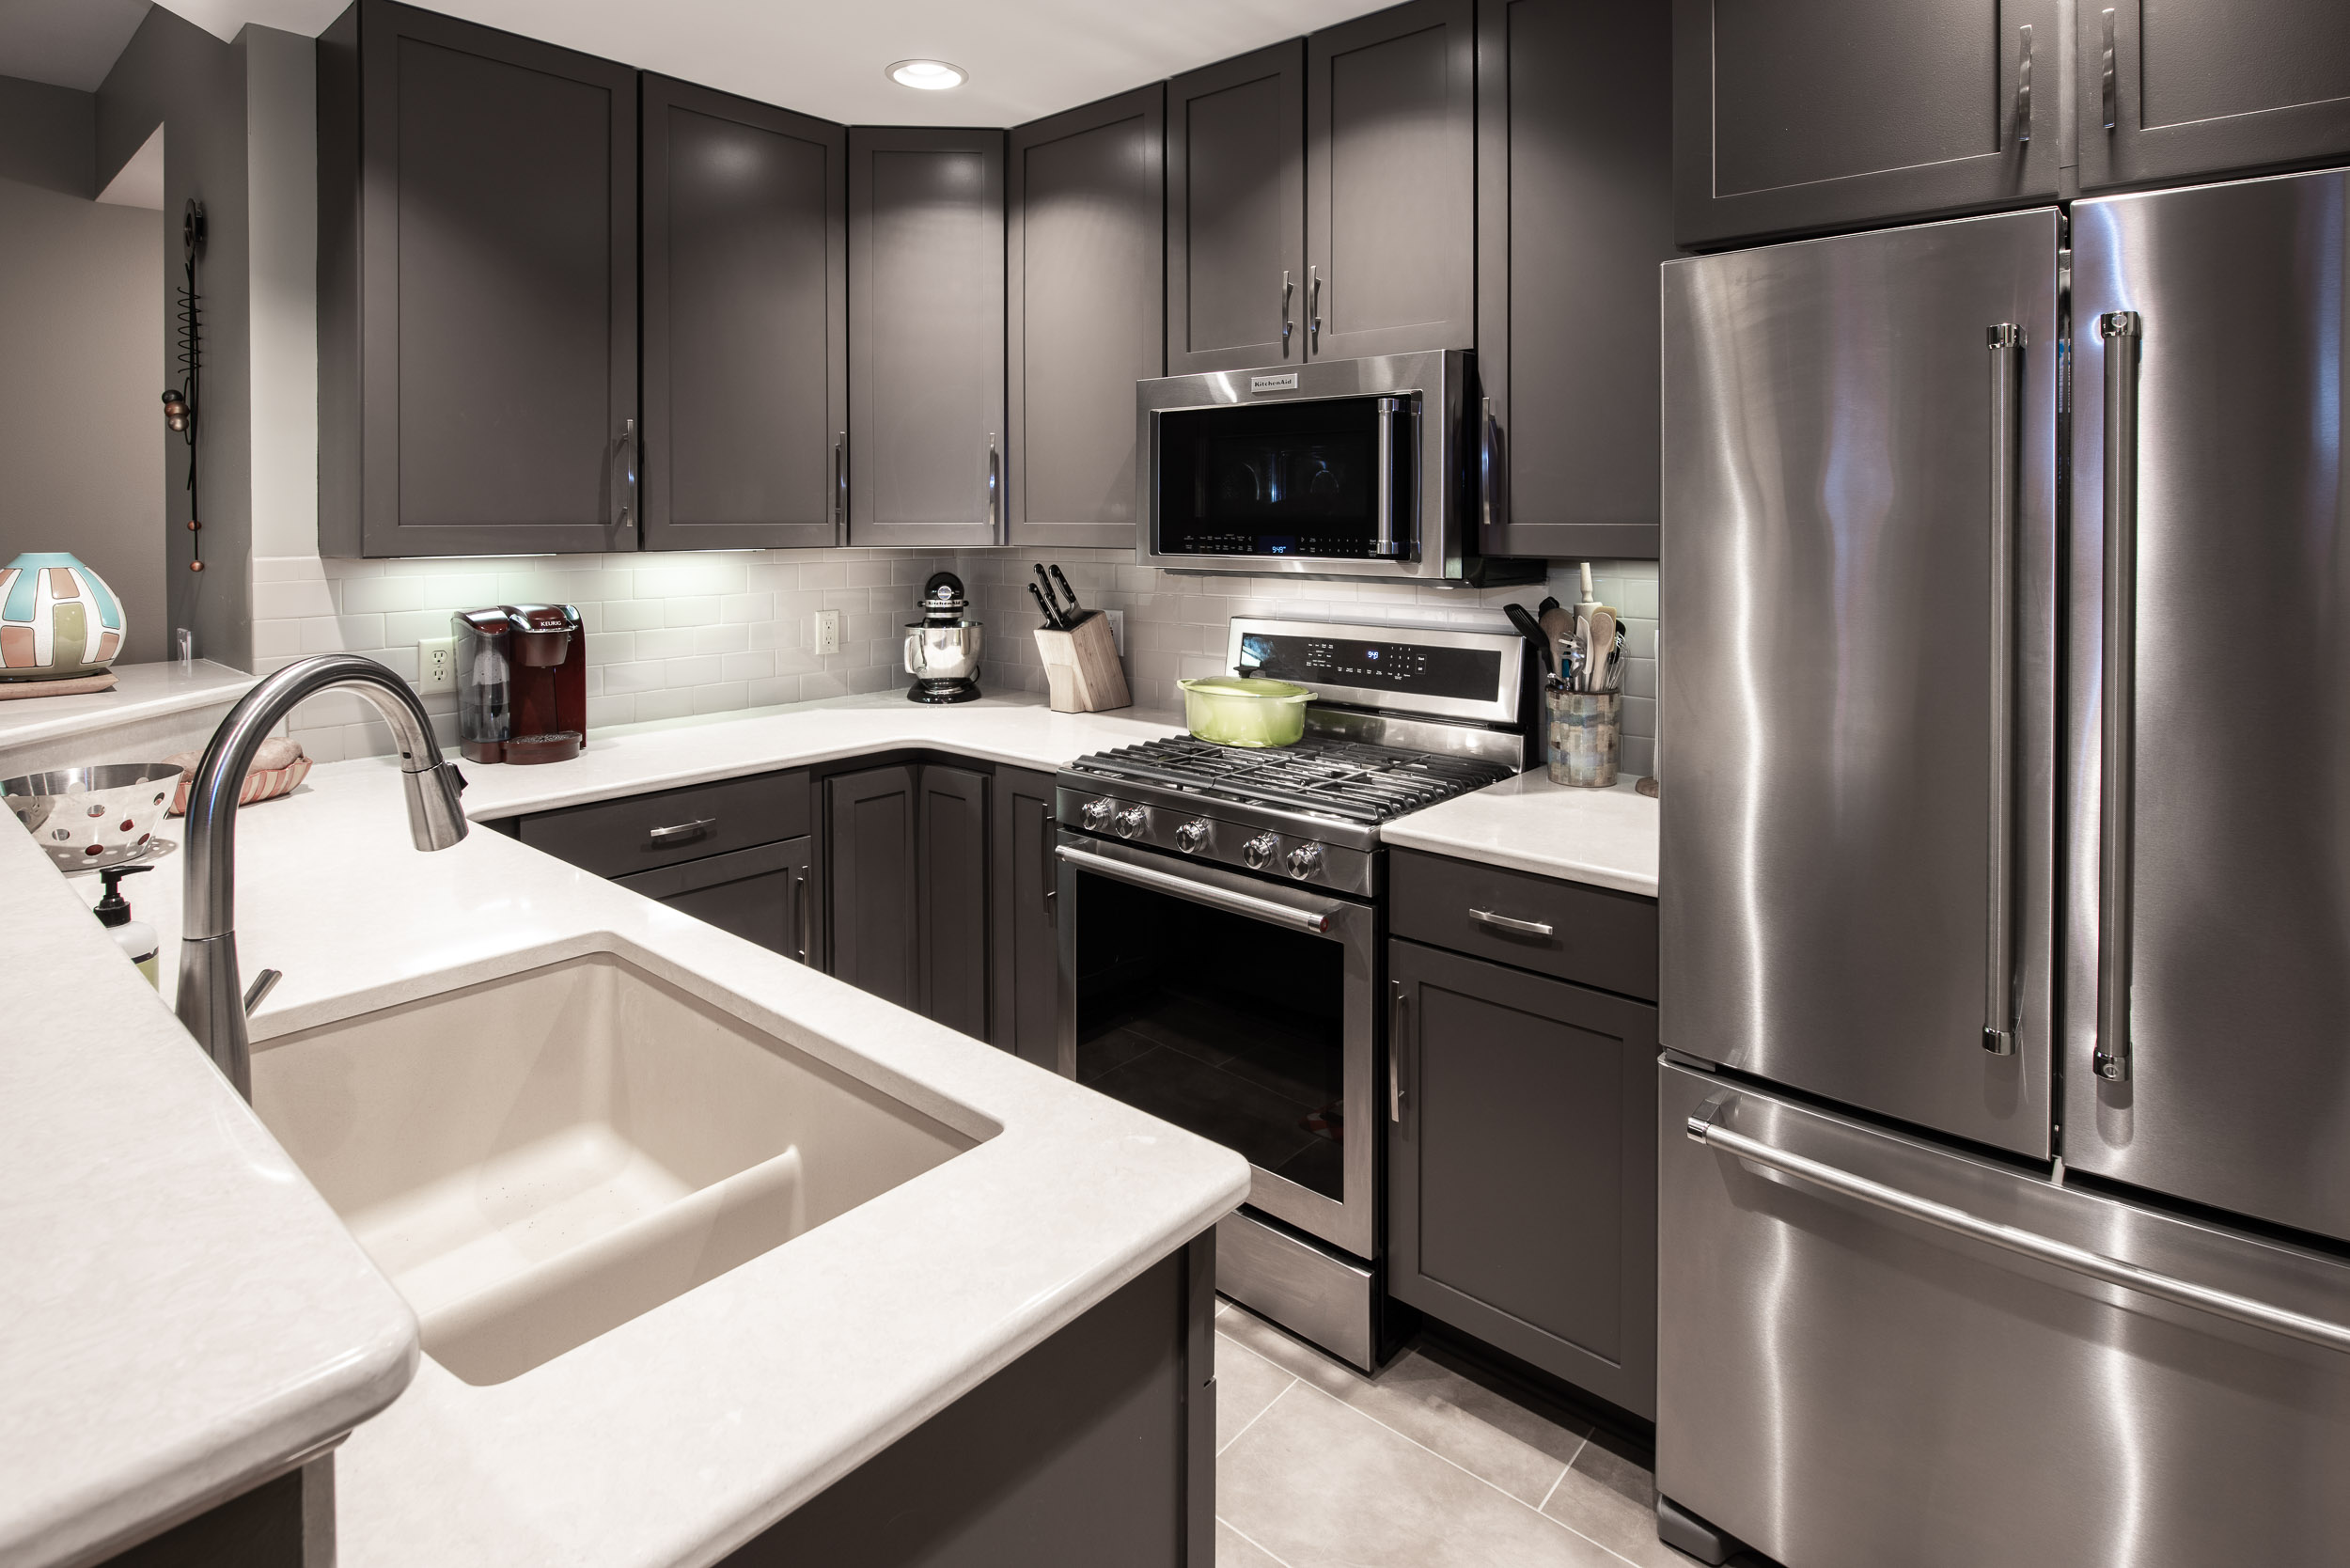 Metropolitan Place Condominium Remodel in Downtown Madison, WI